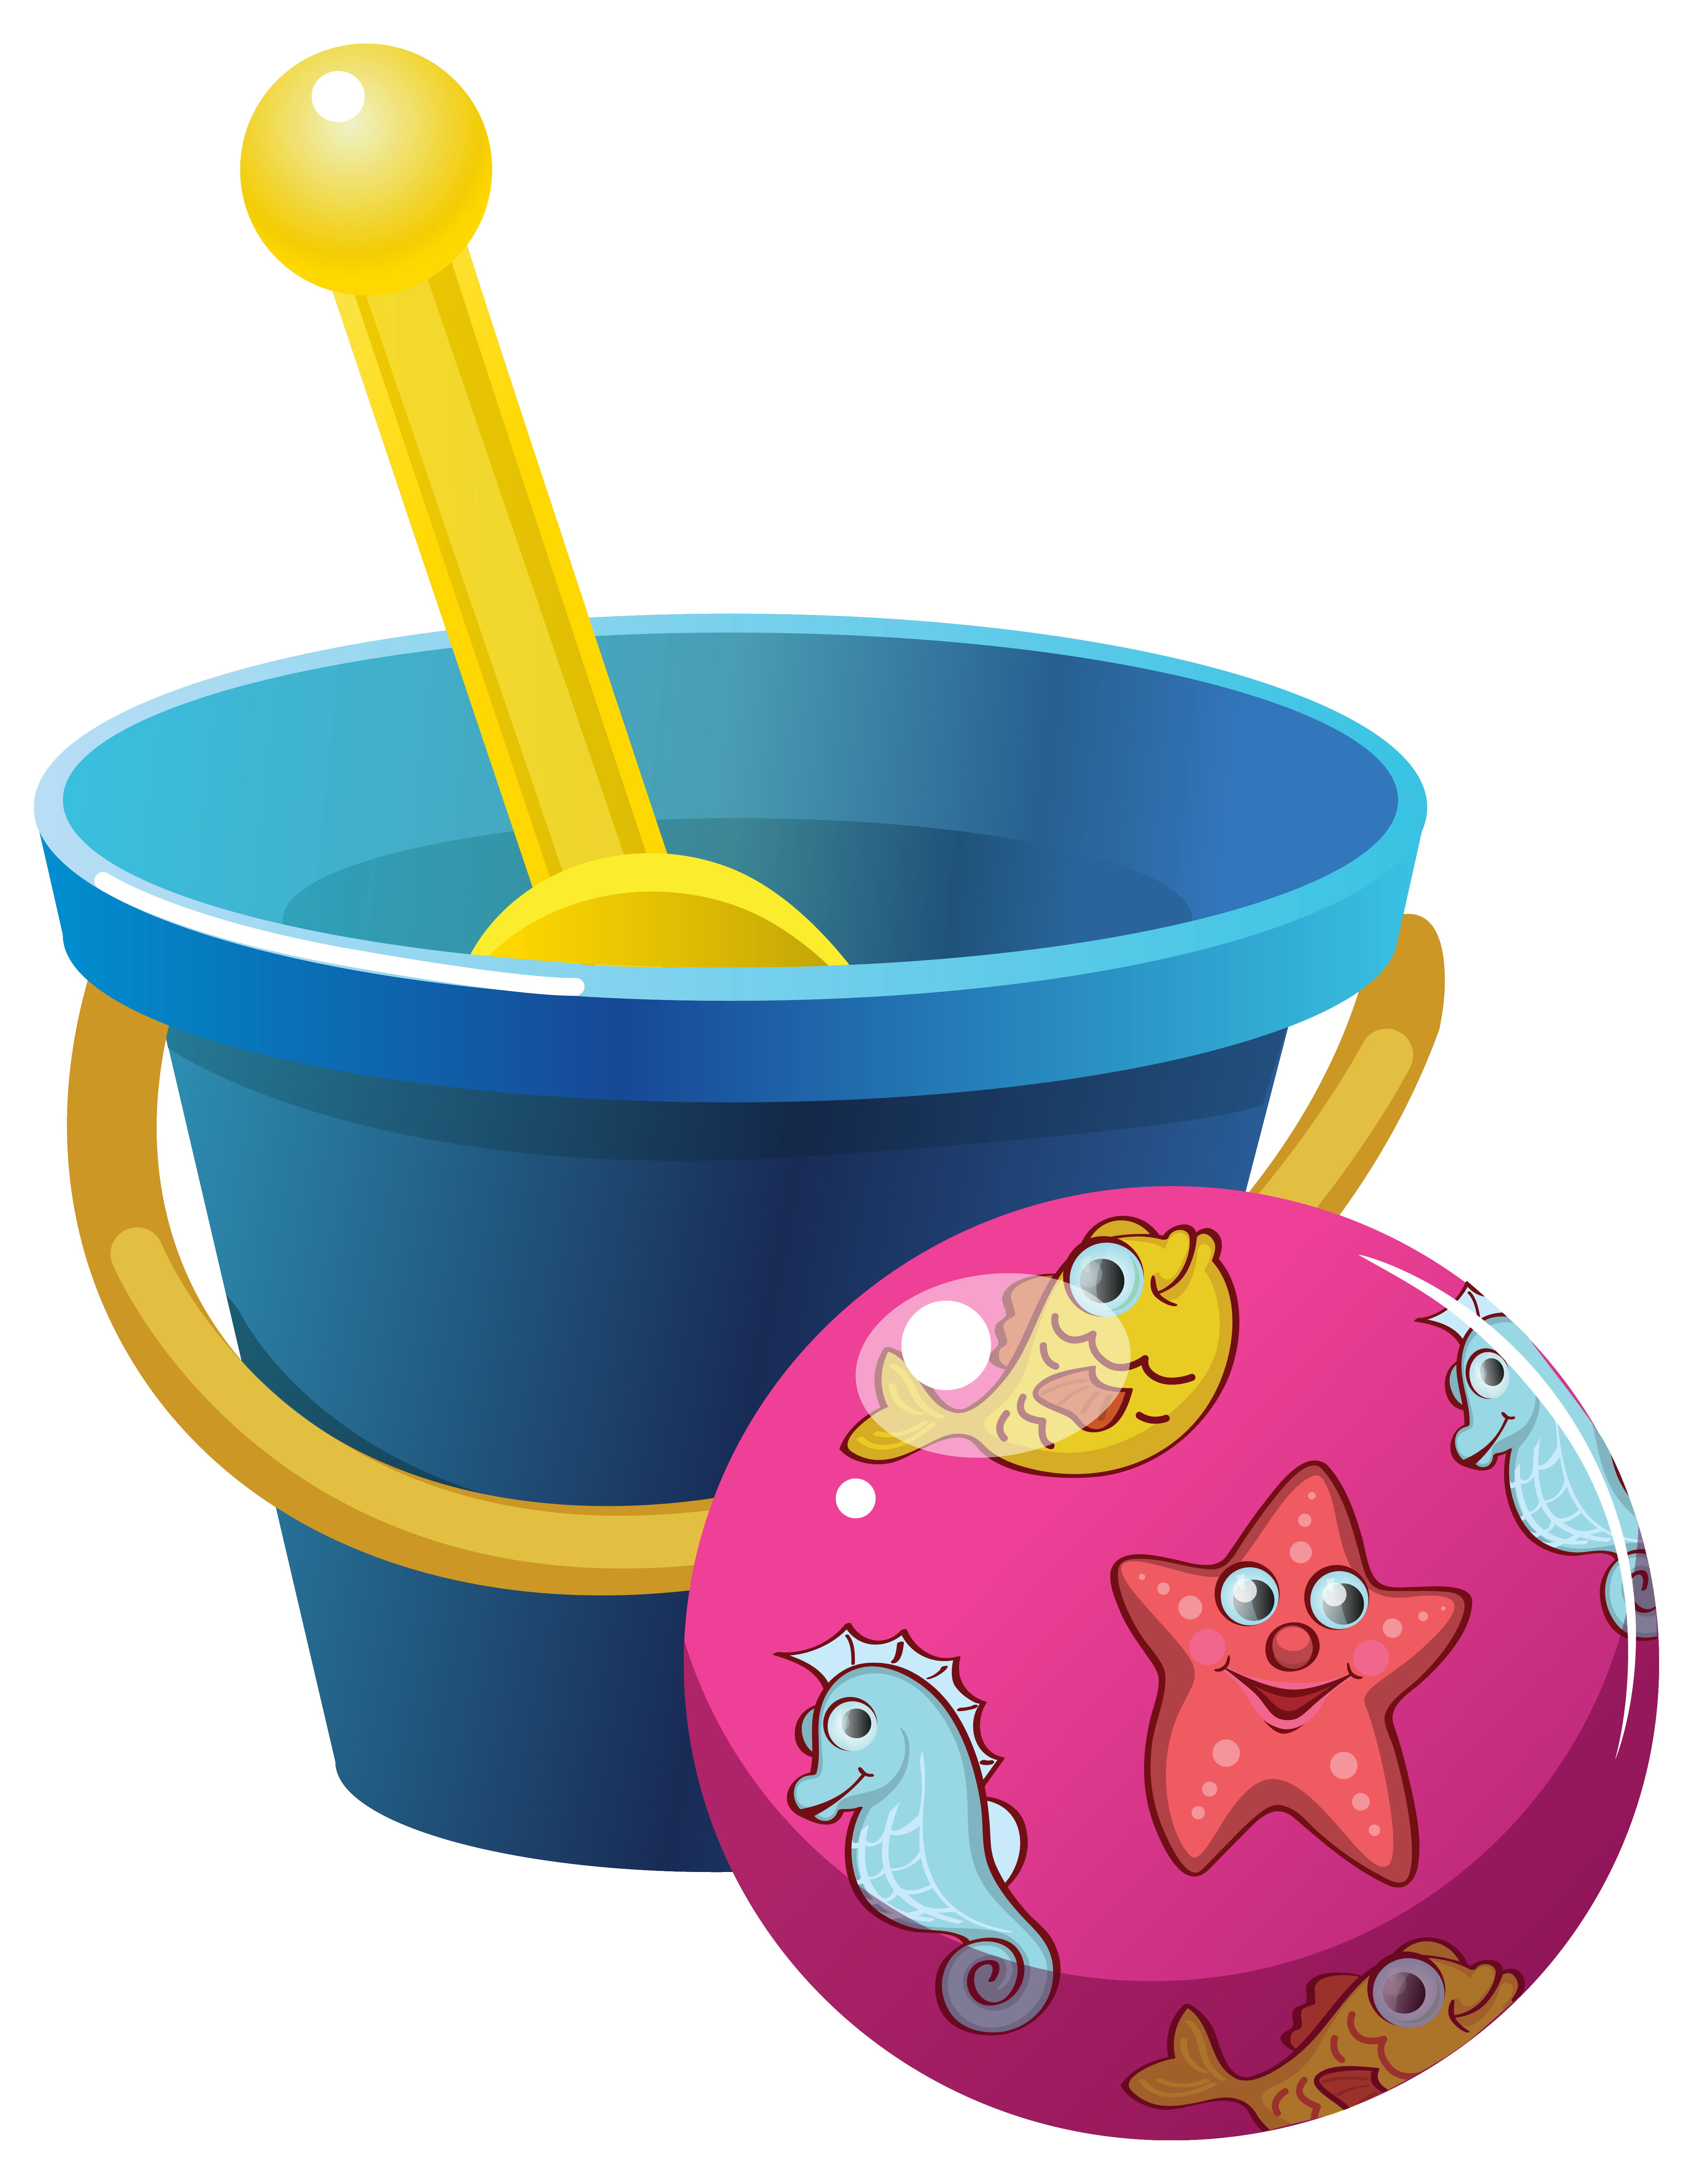 clipart royalty free download Beach and ball png. Bucket clipart cartoon